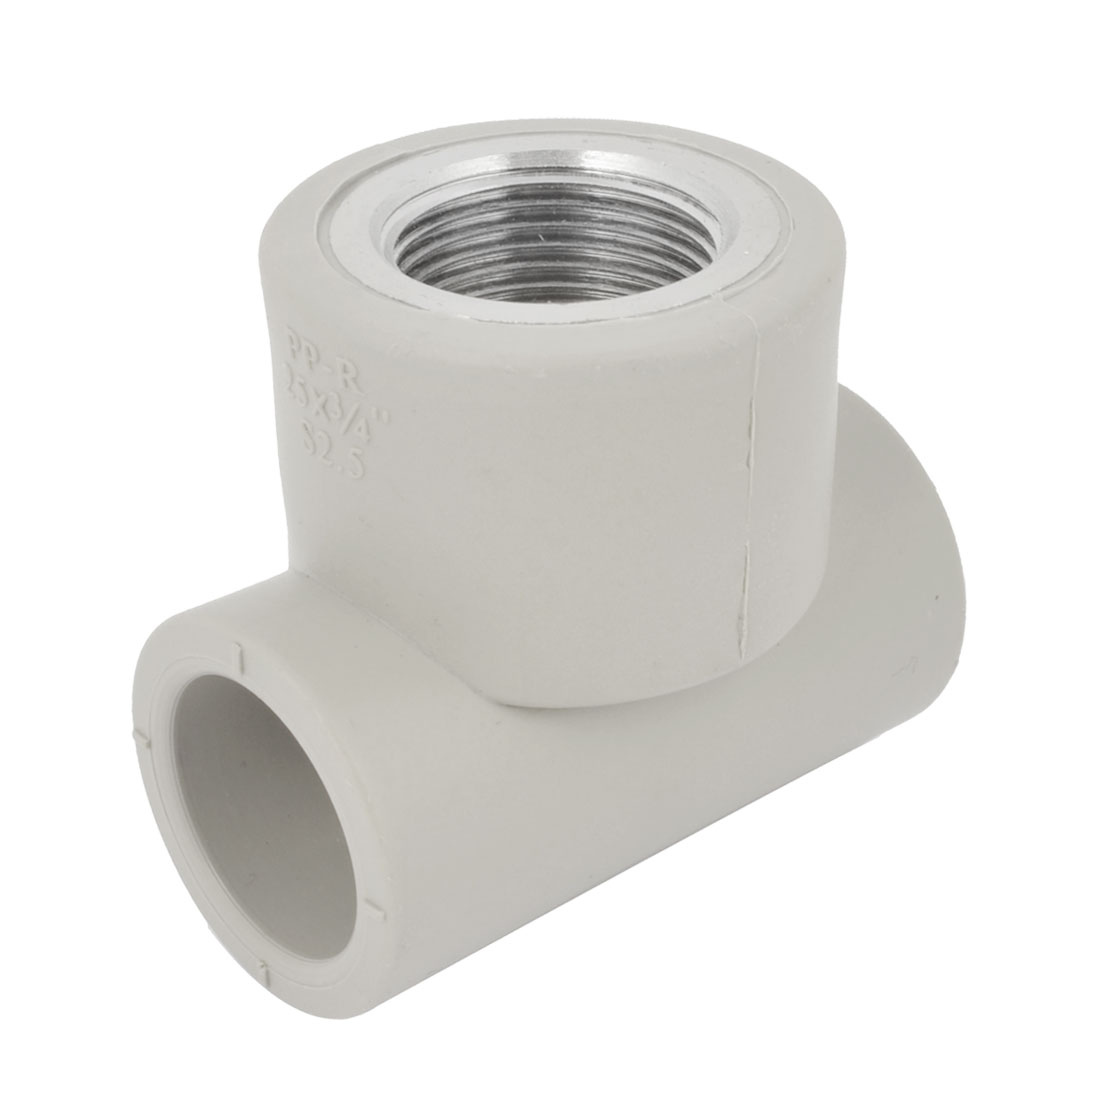 Gray PVC 3/4PT Thread 25mm Tee 3 Way Water Pipe Tube Adapter Connector